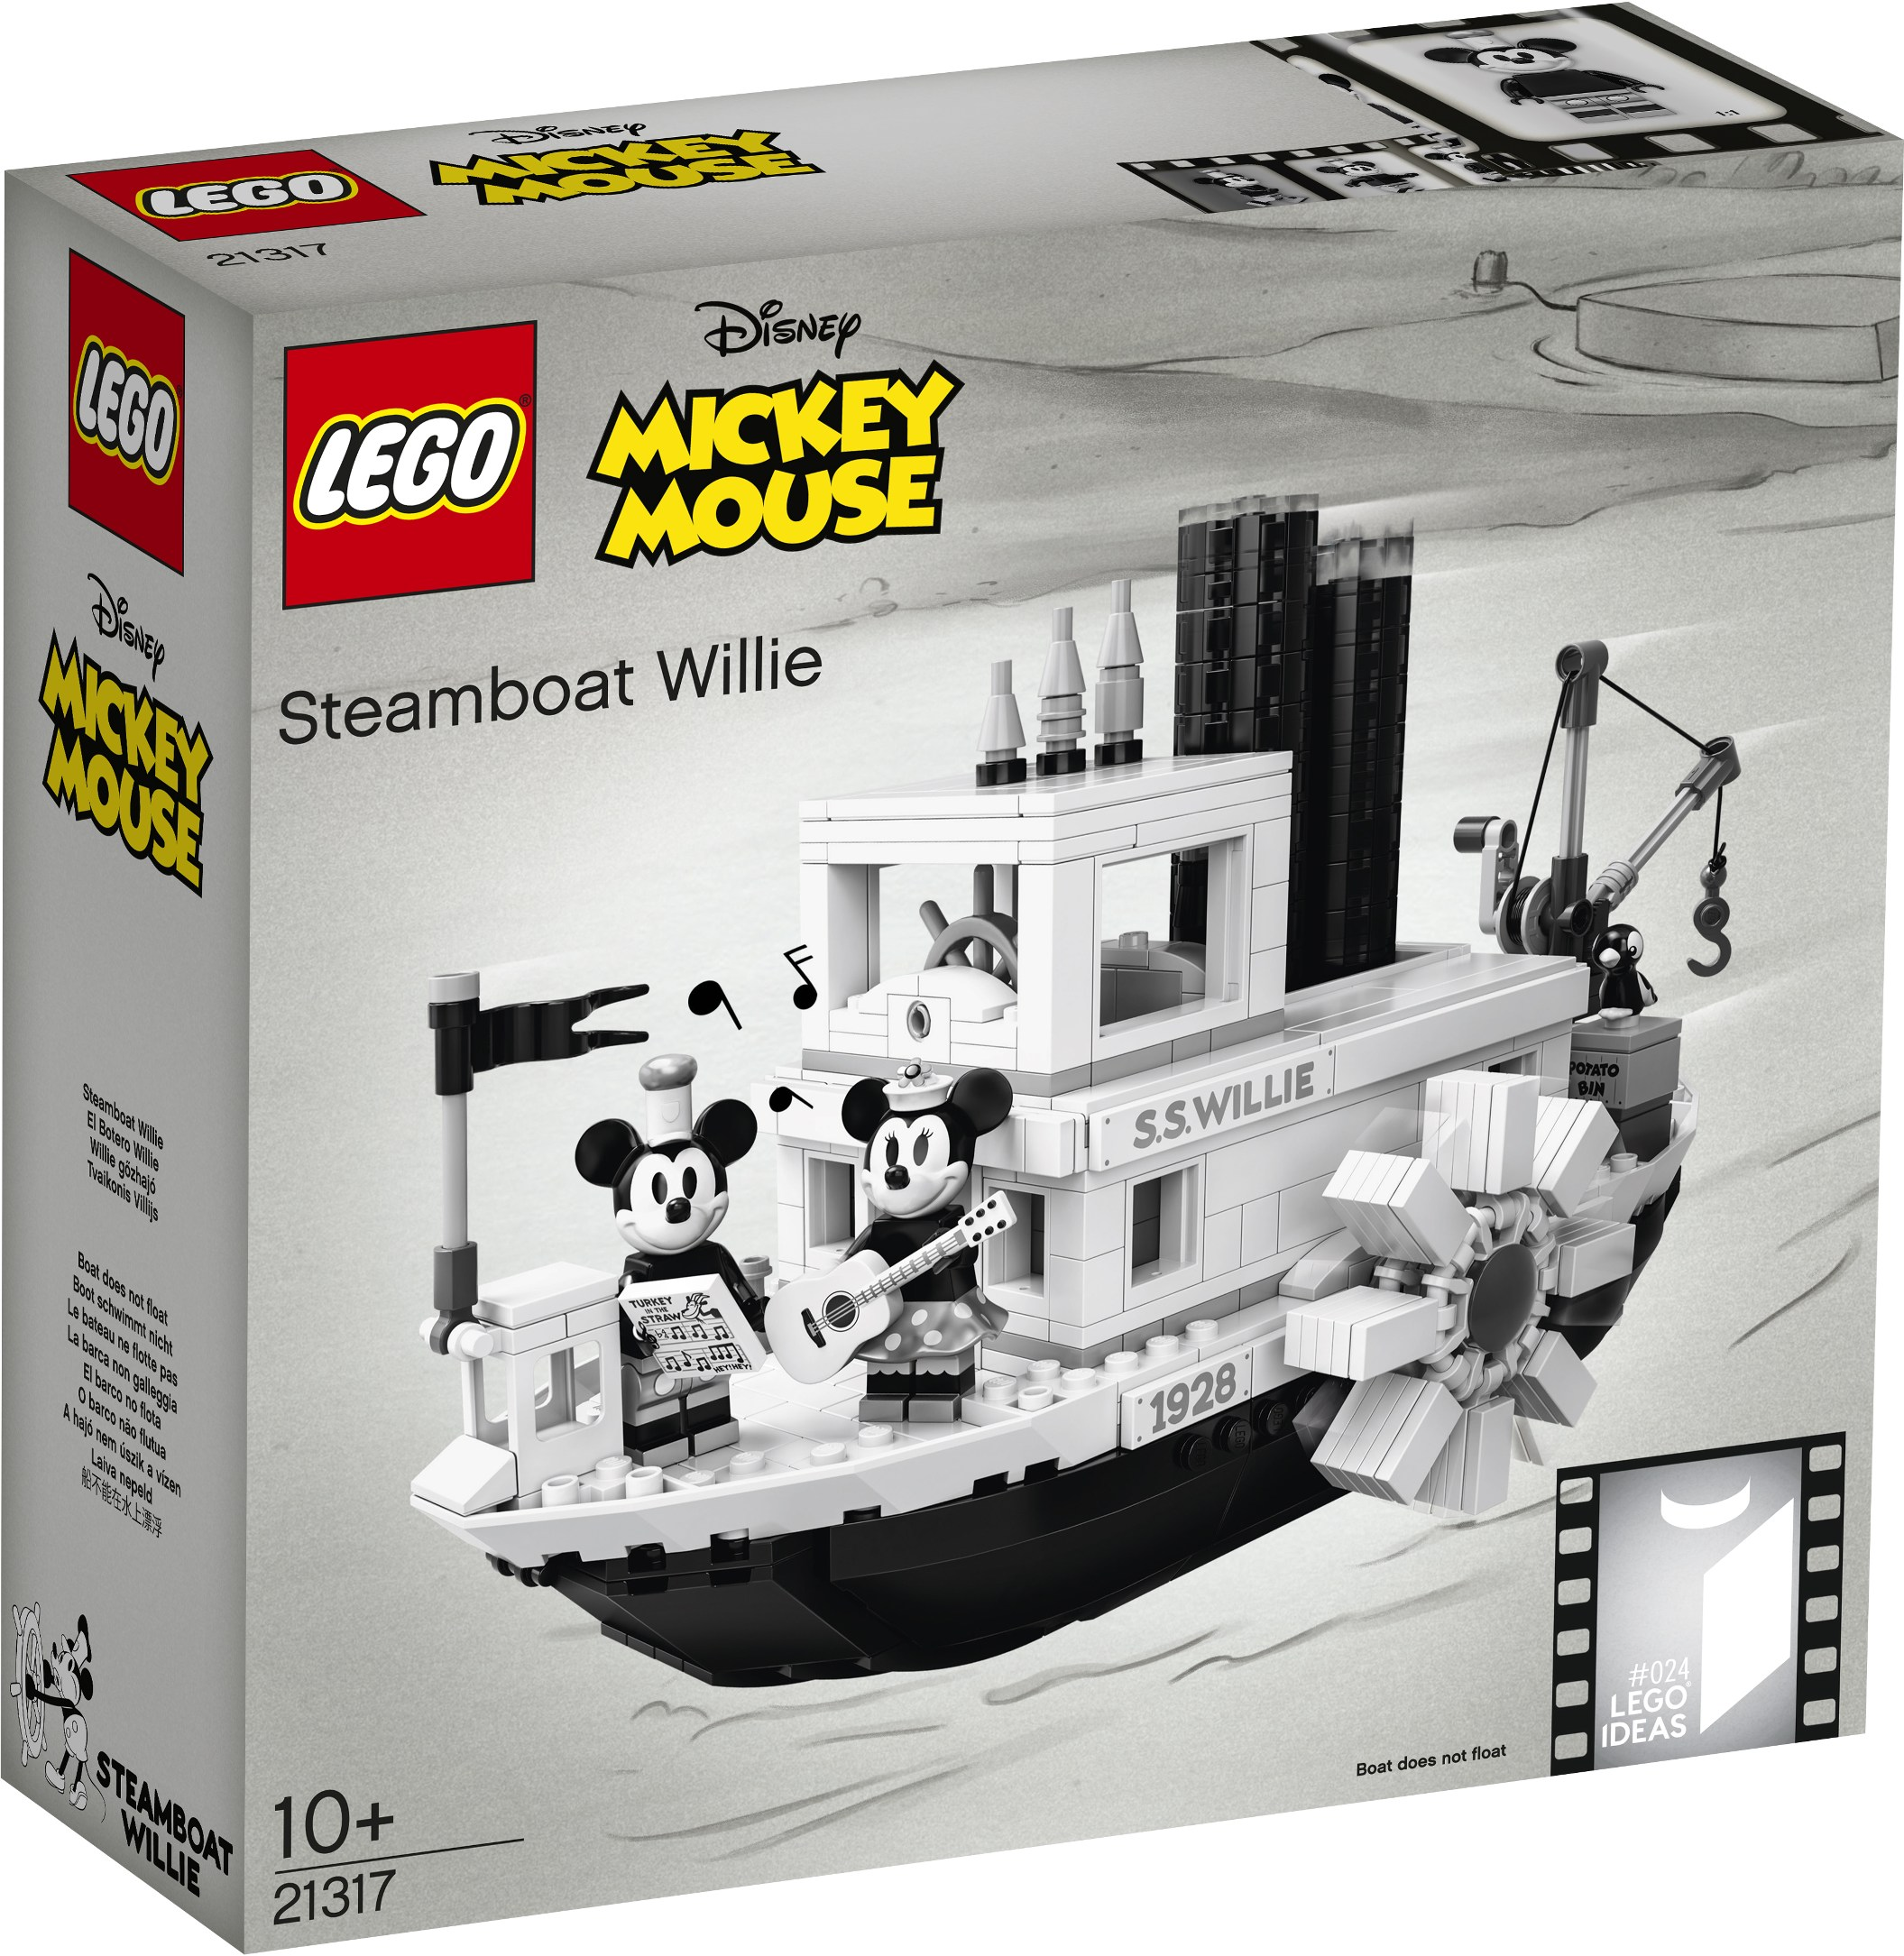 21317 Lego Ideas Disney Mickey Mouse Steamboat Willie